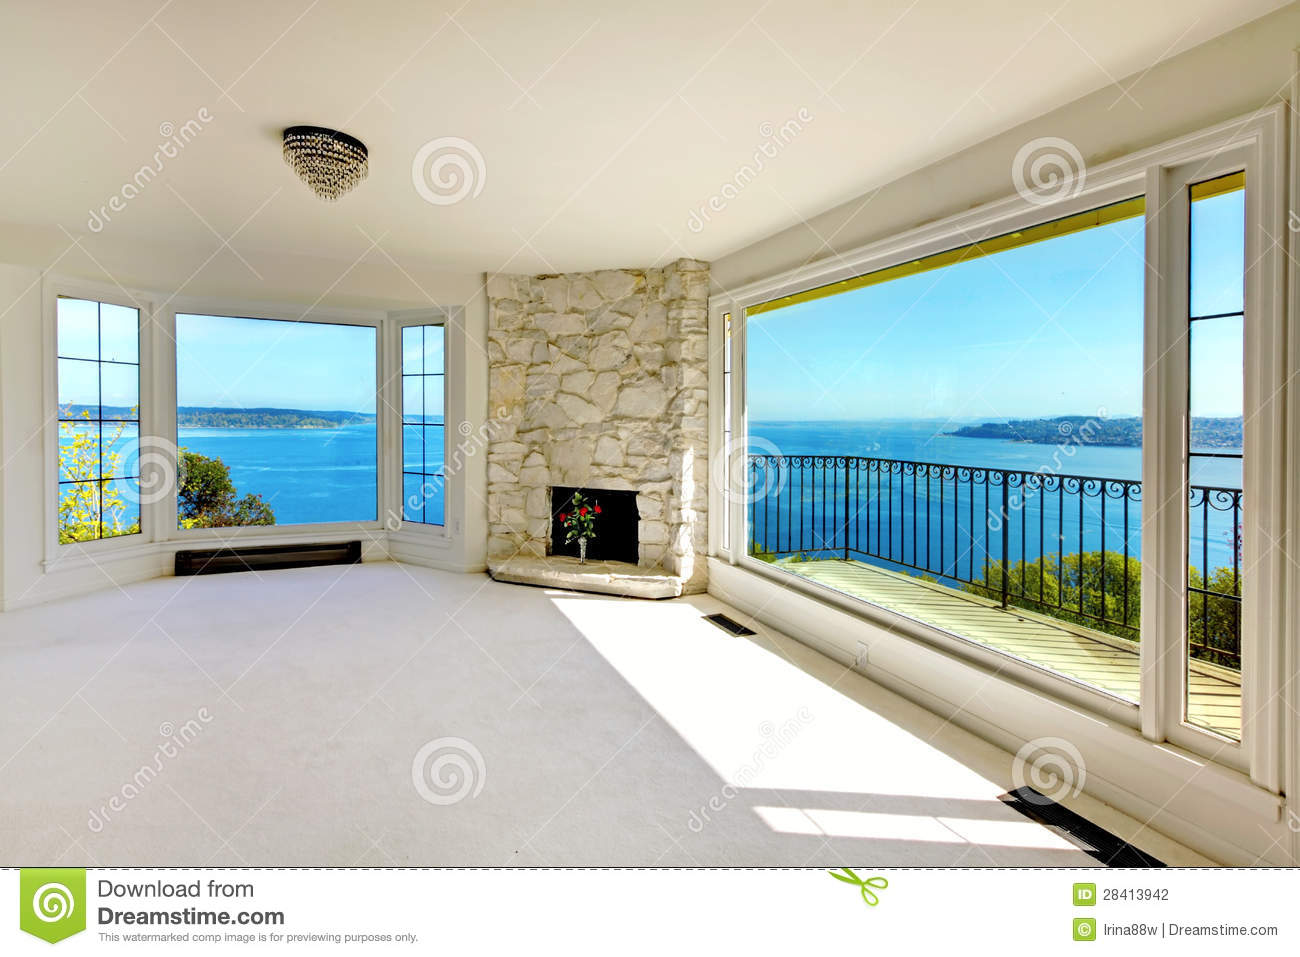 Luxury real estate bedroom with water view and fireplace for Luxury fireplaces luxury homes